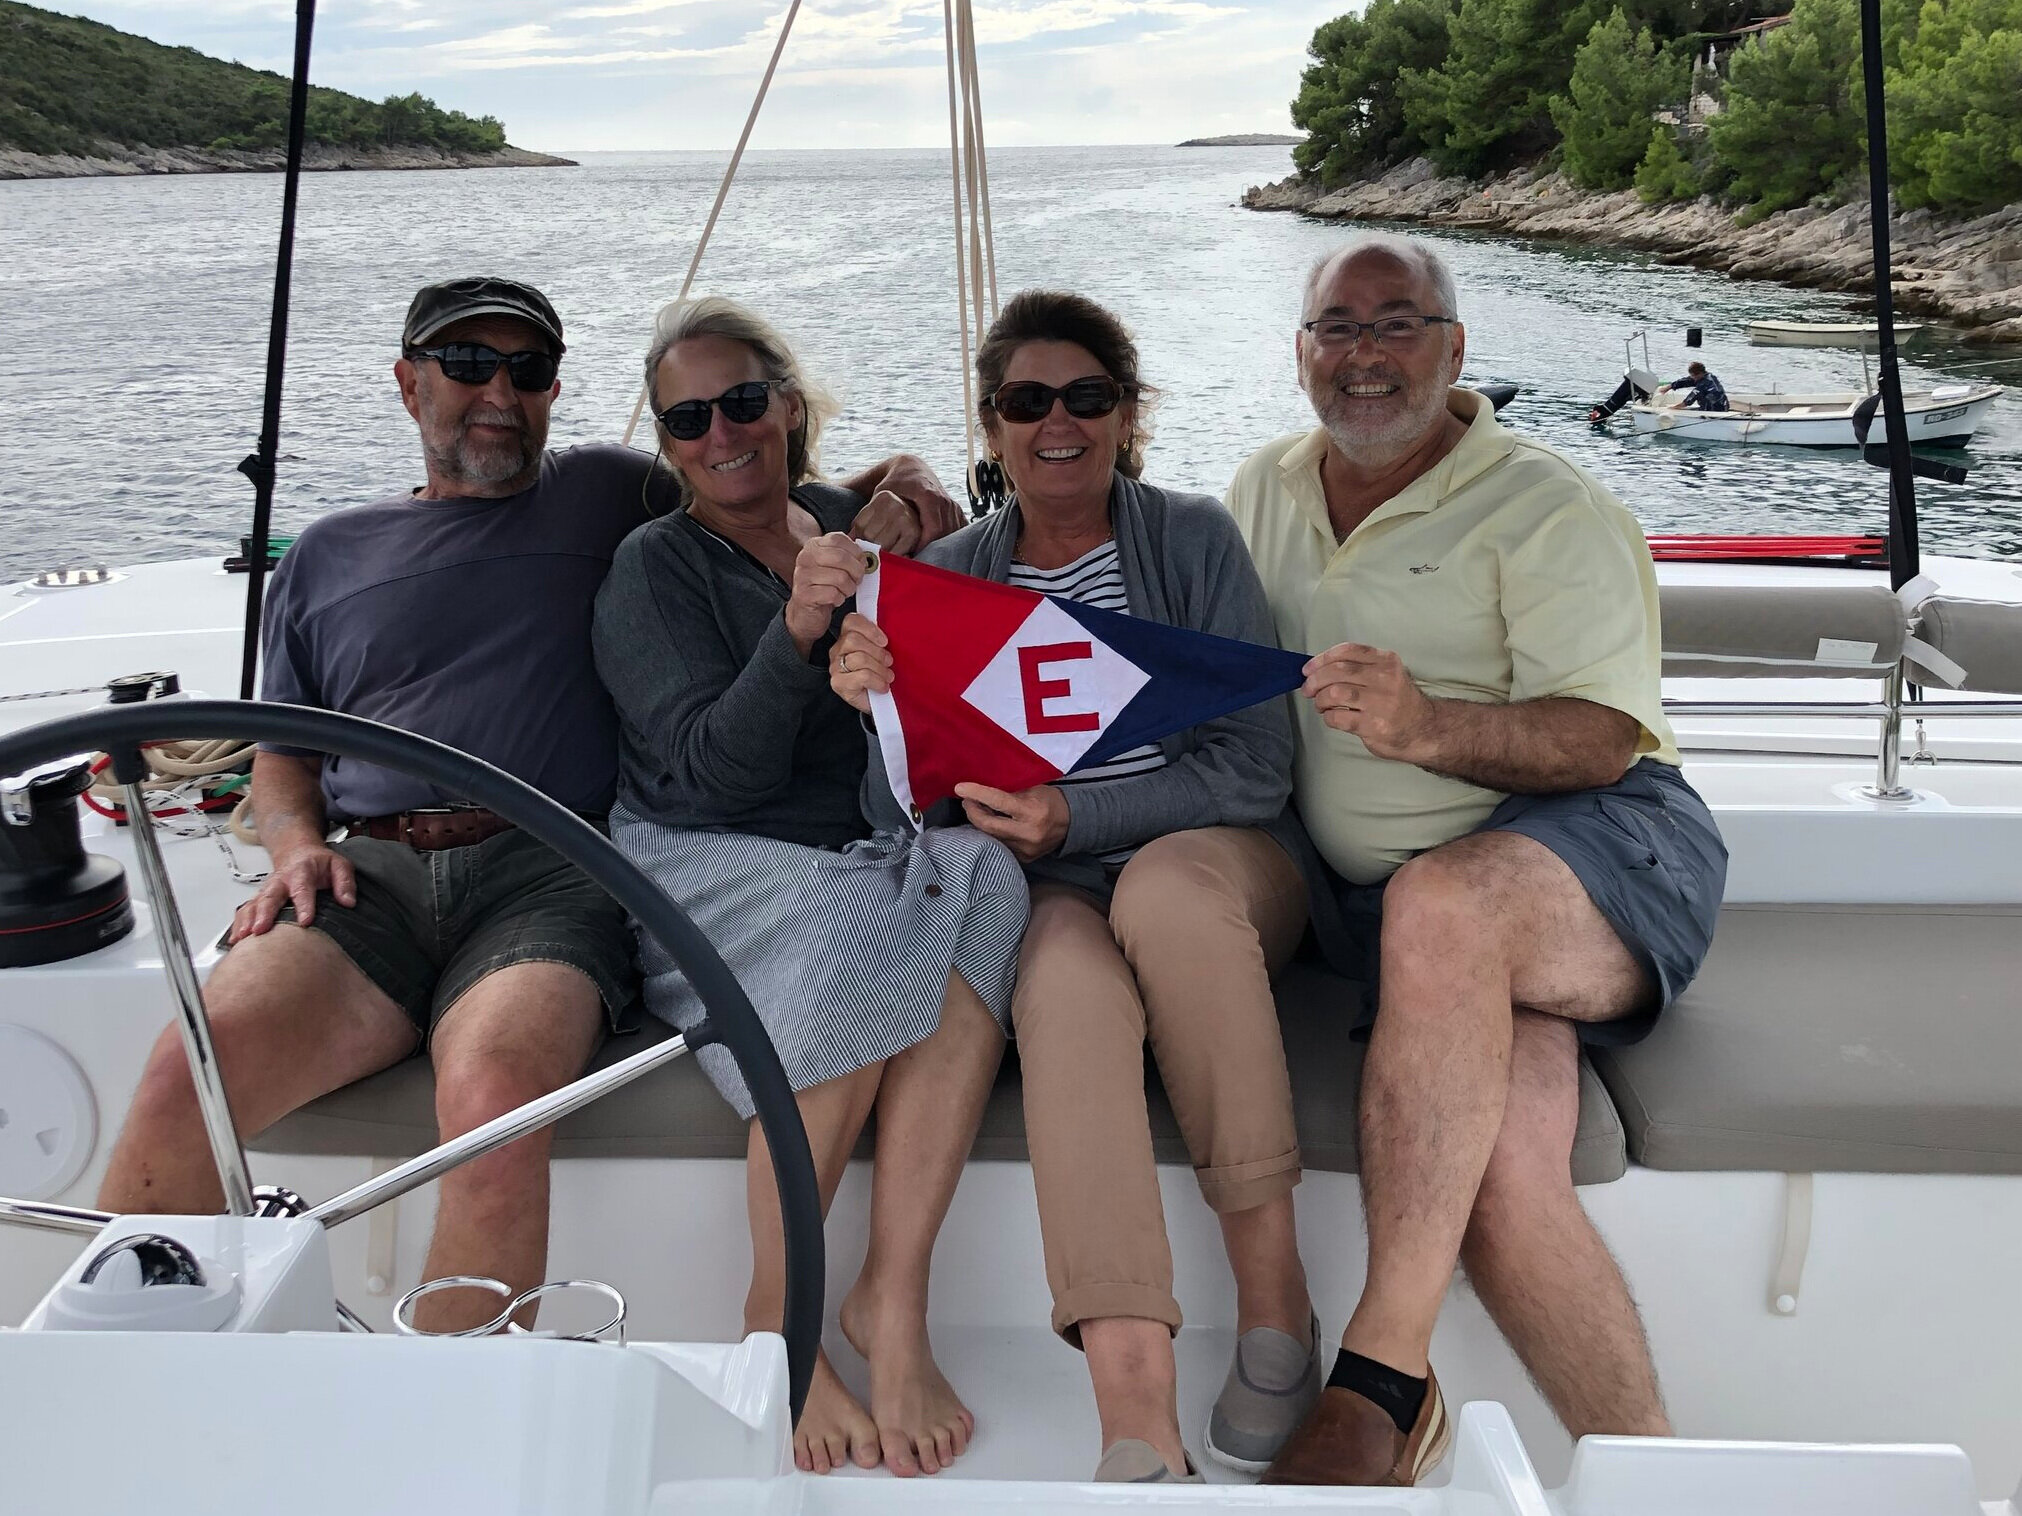 René and Lynne and Shelley and Nick show their EYC pride while cruising off the Dalmatian coast in Croatia